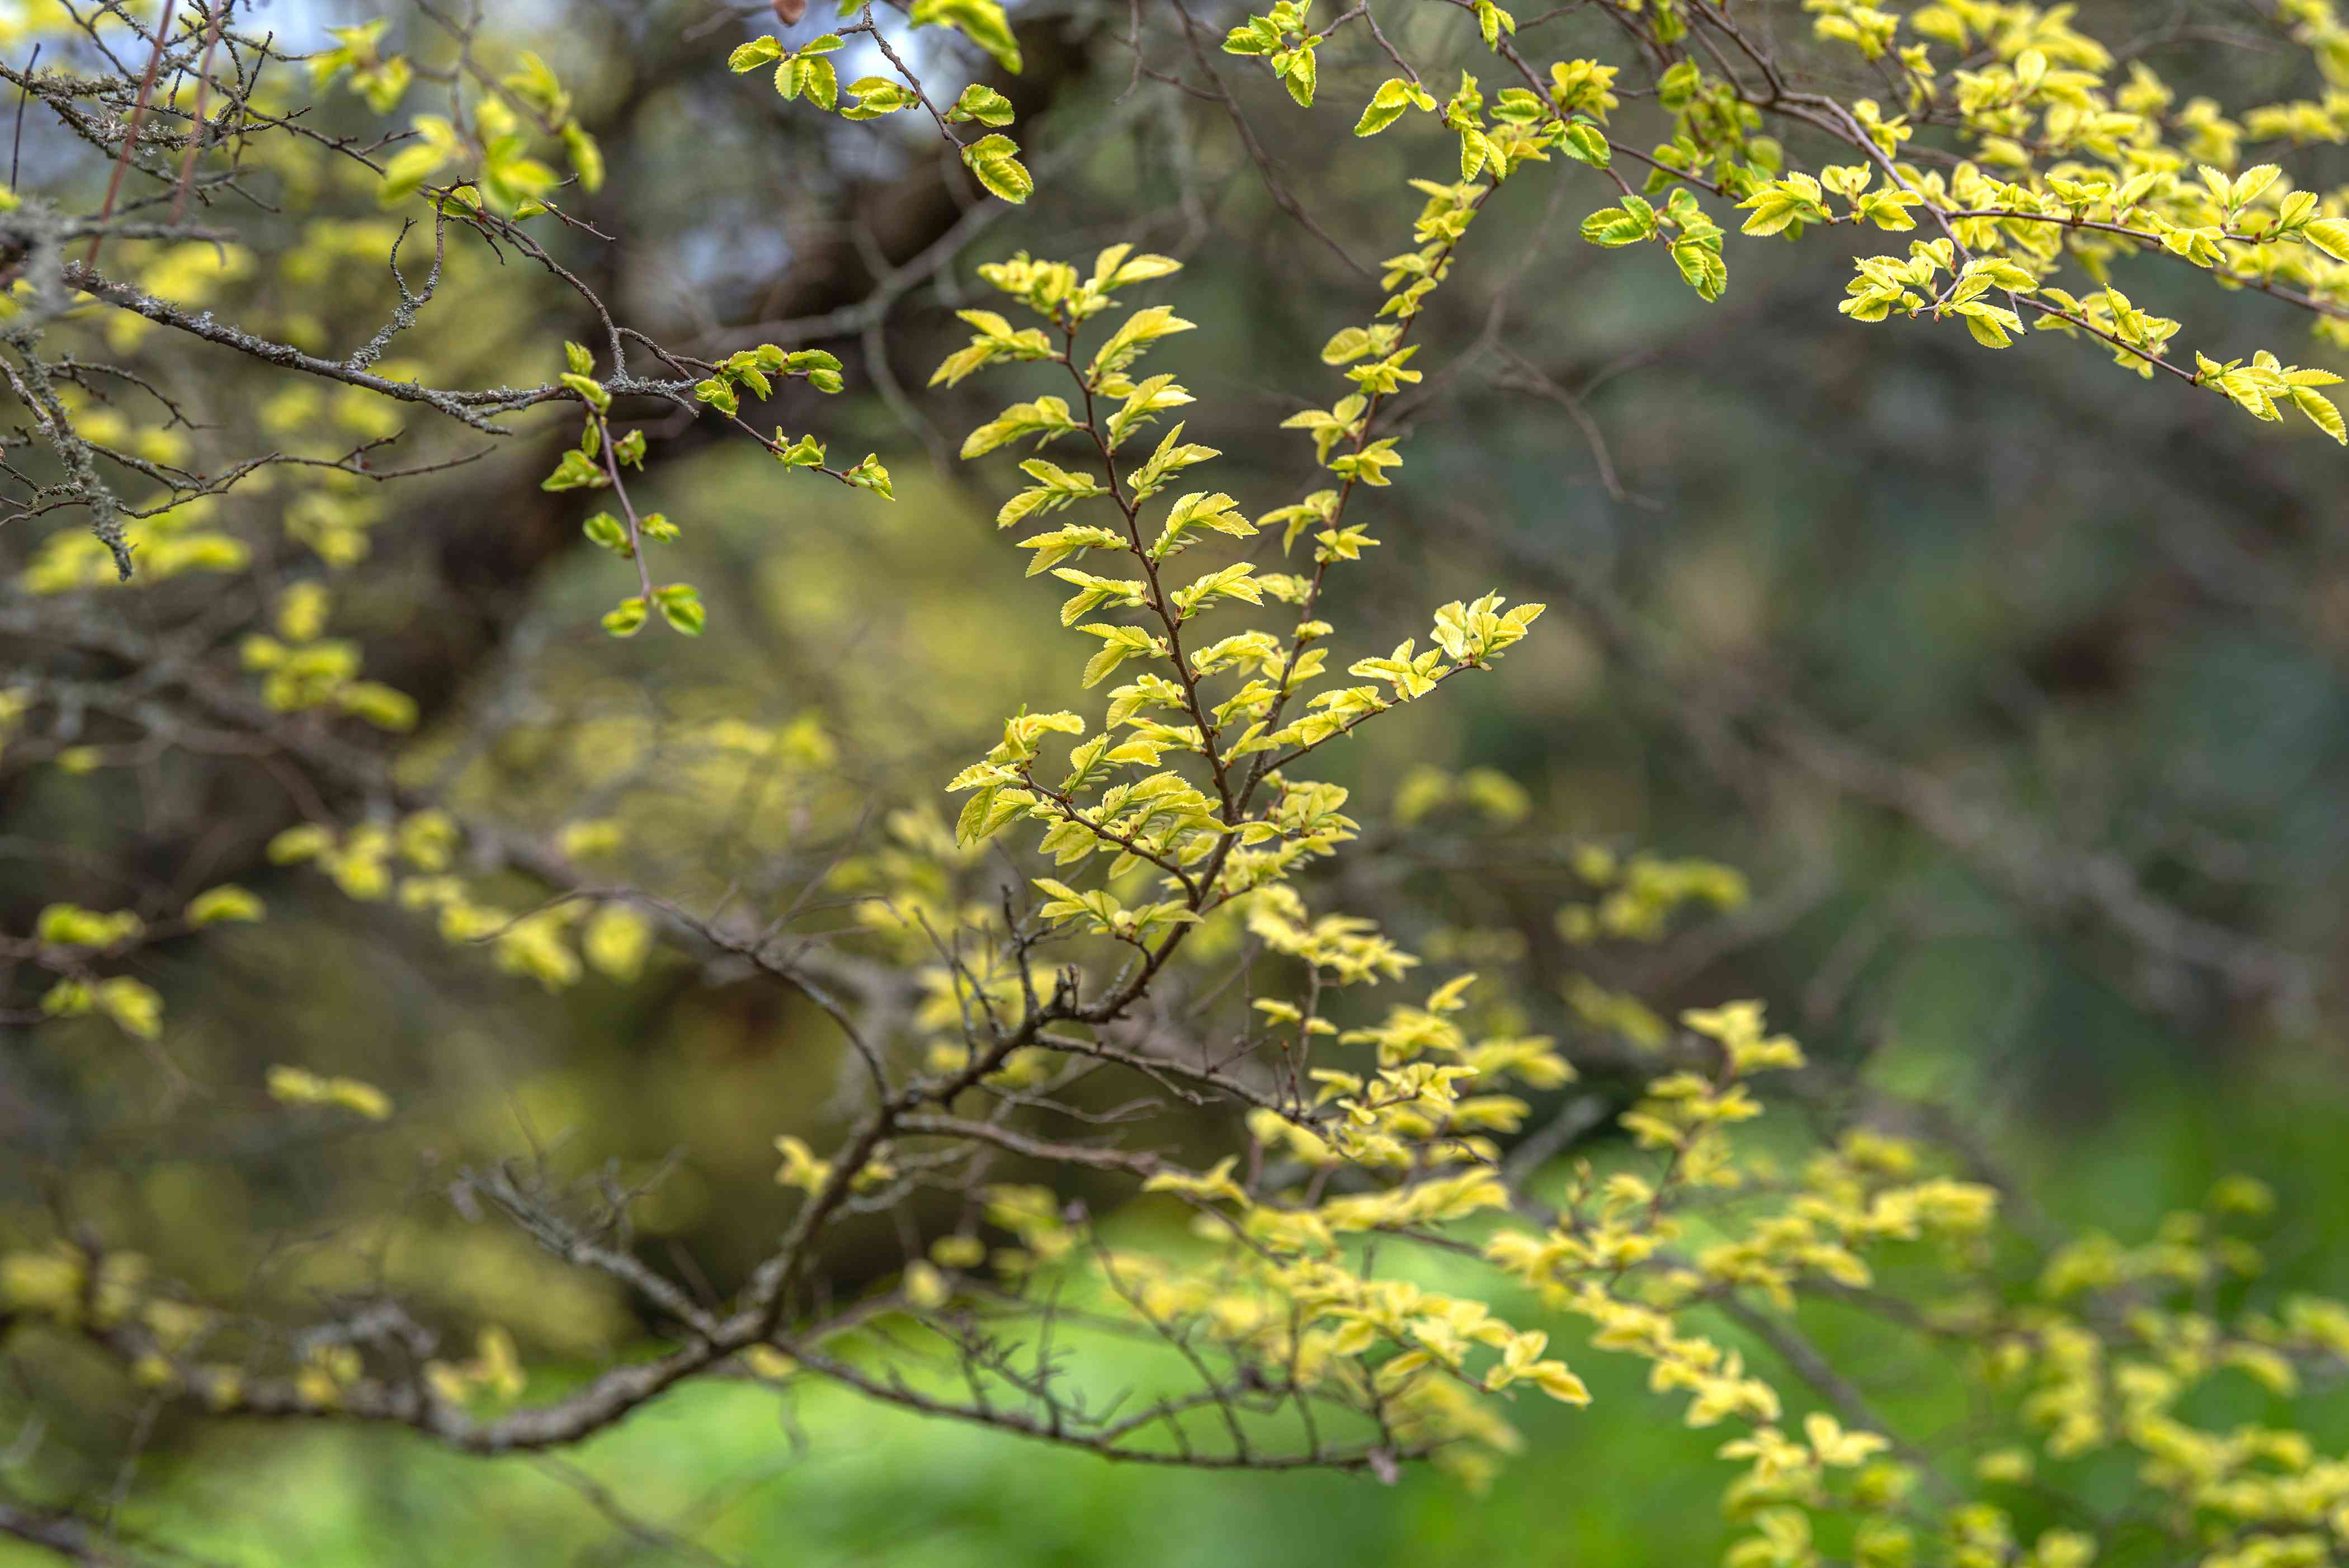 Lacebark elm tree branches with small bright yellow leaves